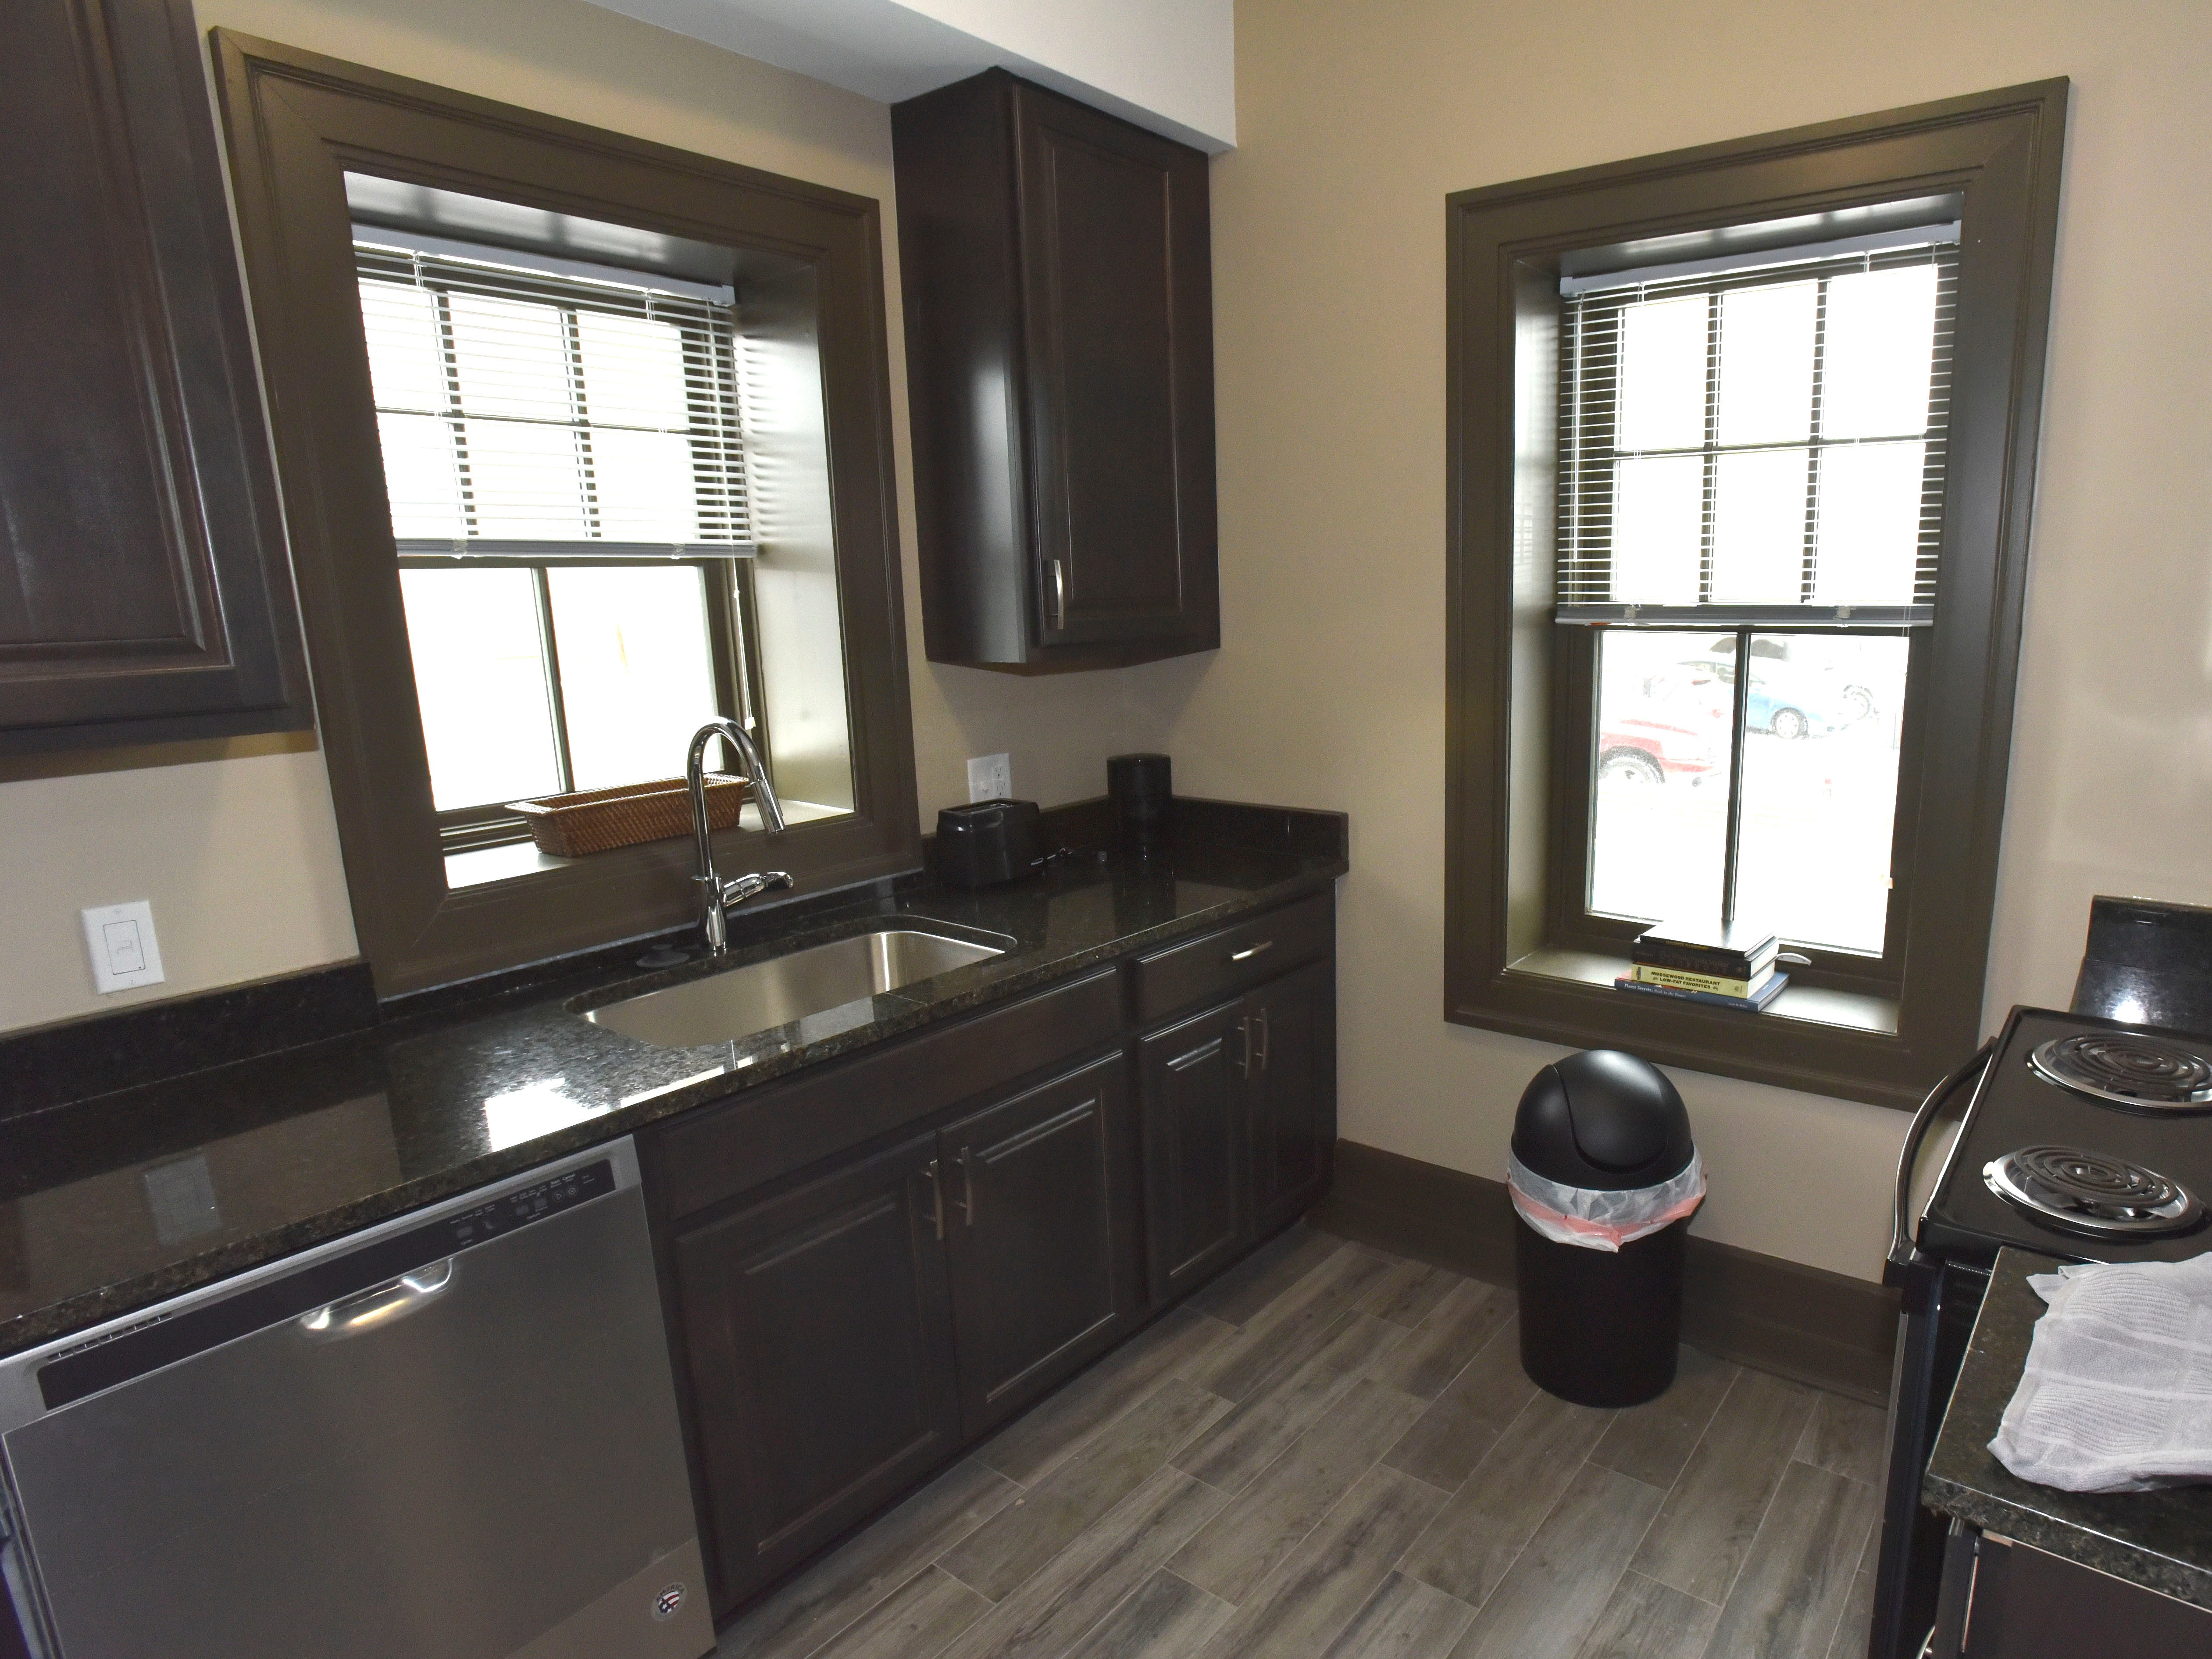 This is a finished kitchen.